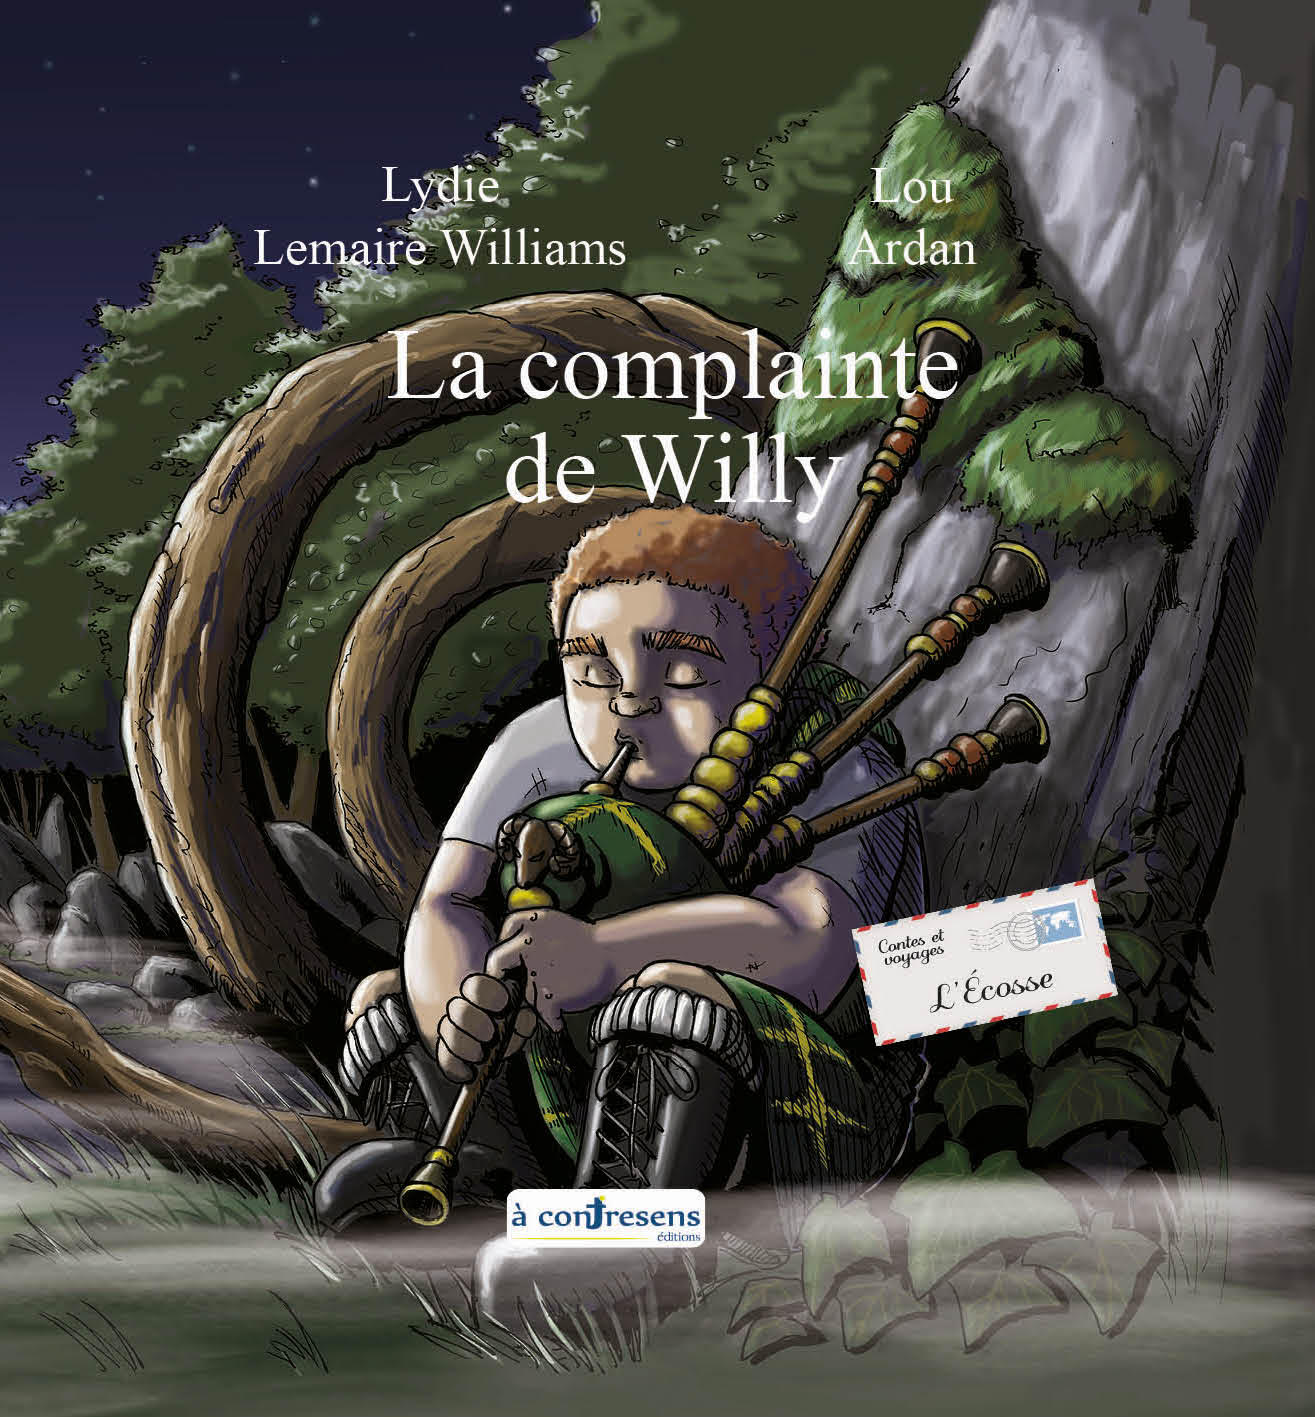 Visuel La complainte de Willy